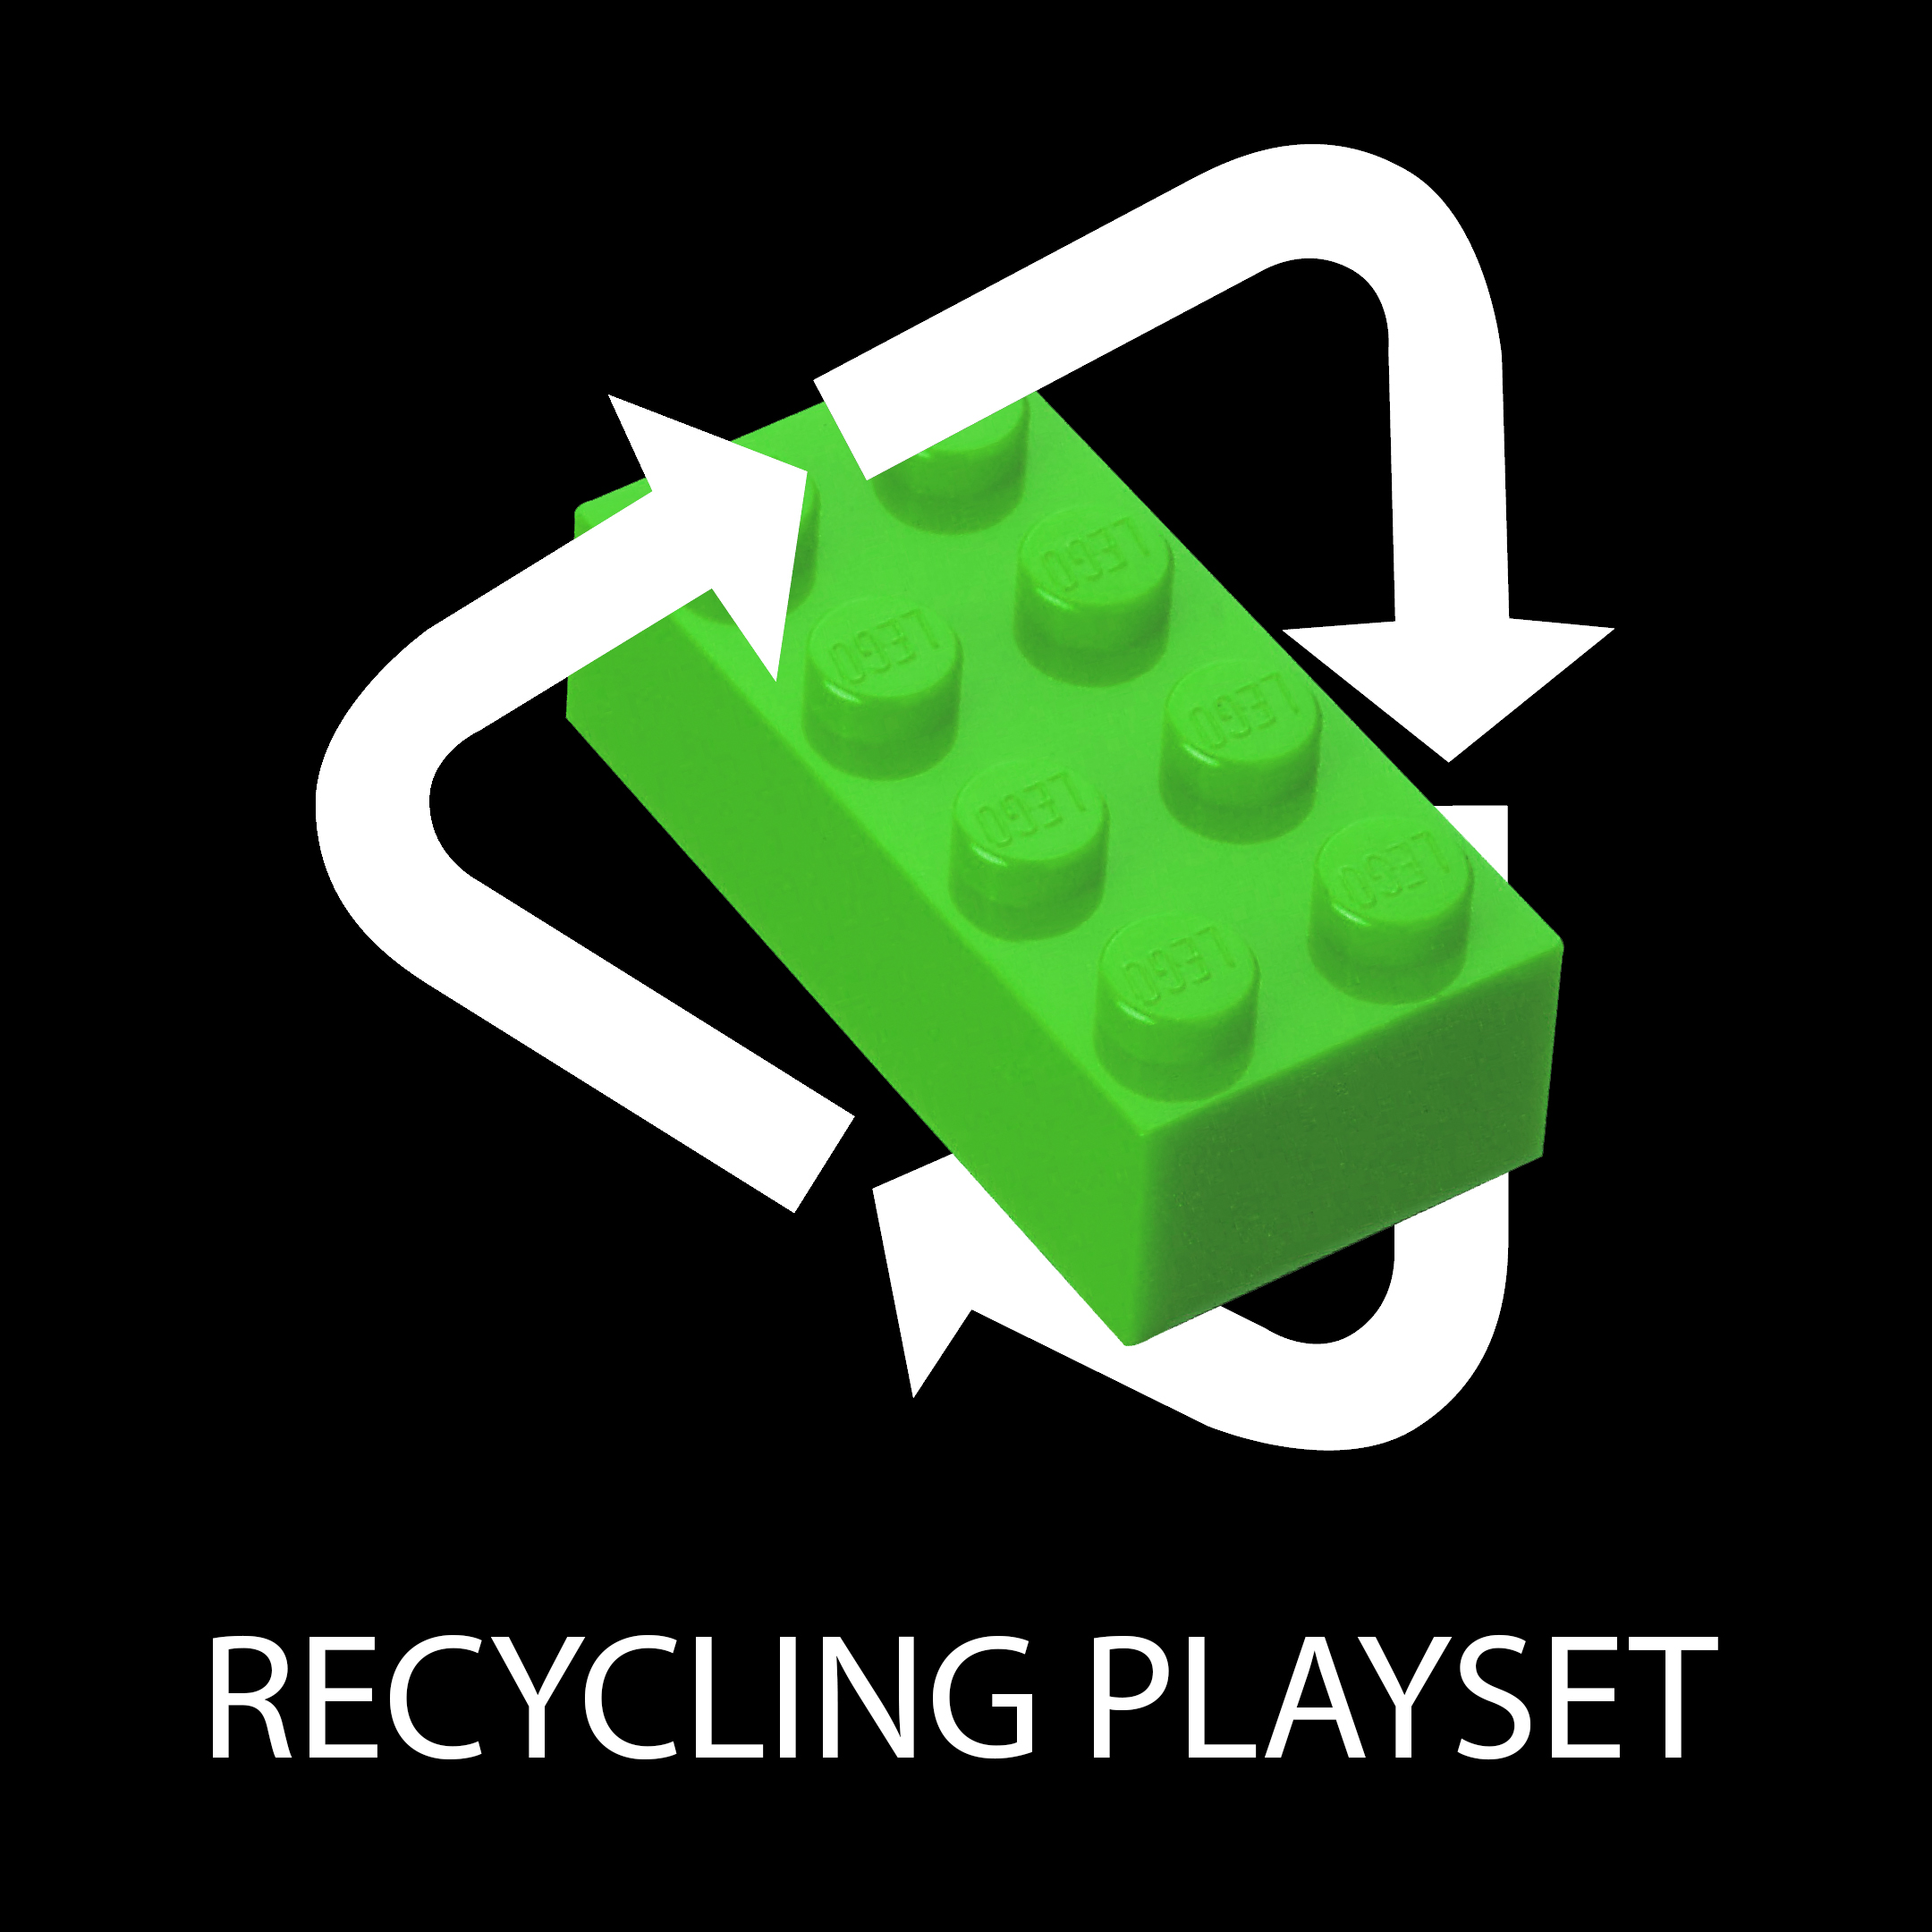 recycling playset